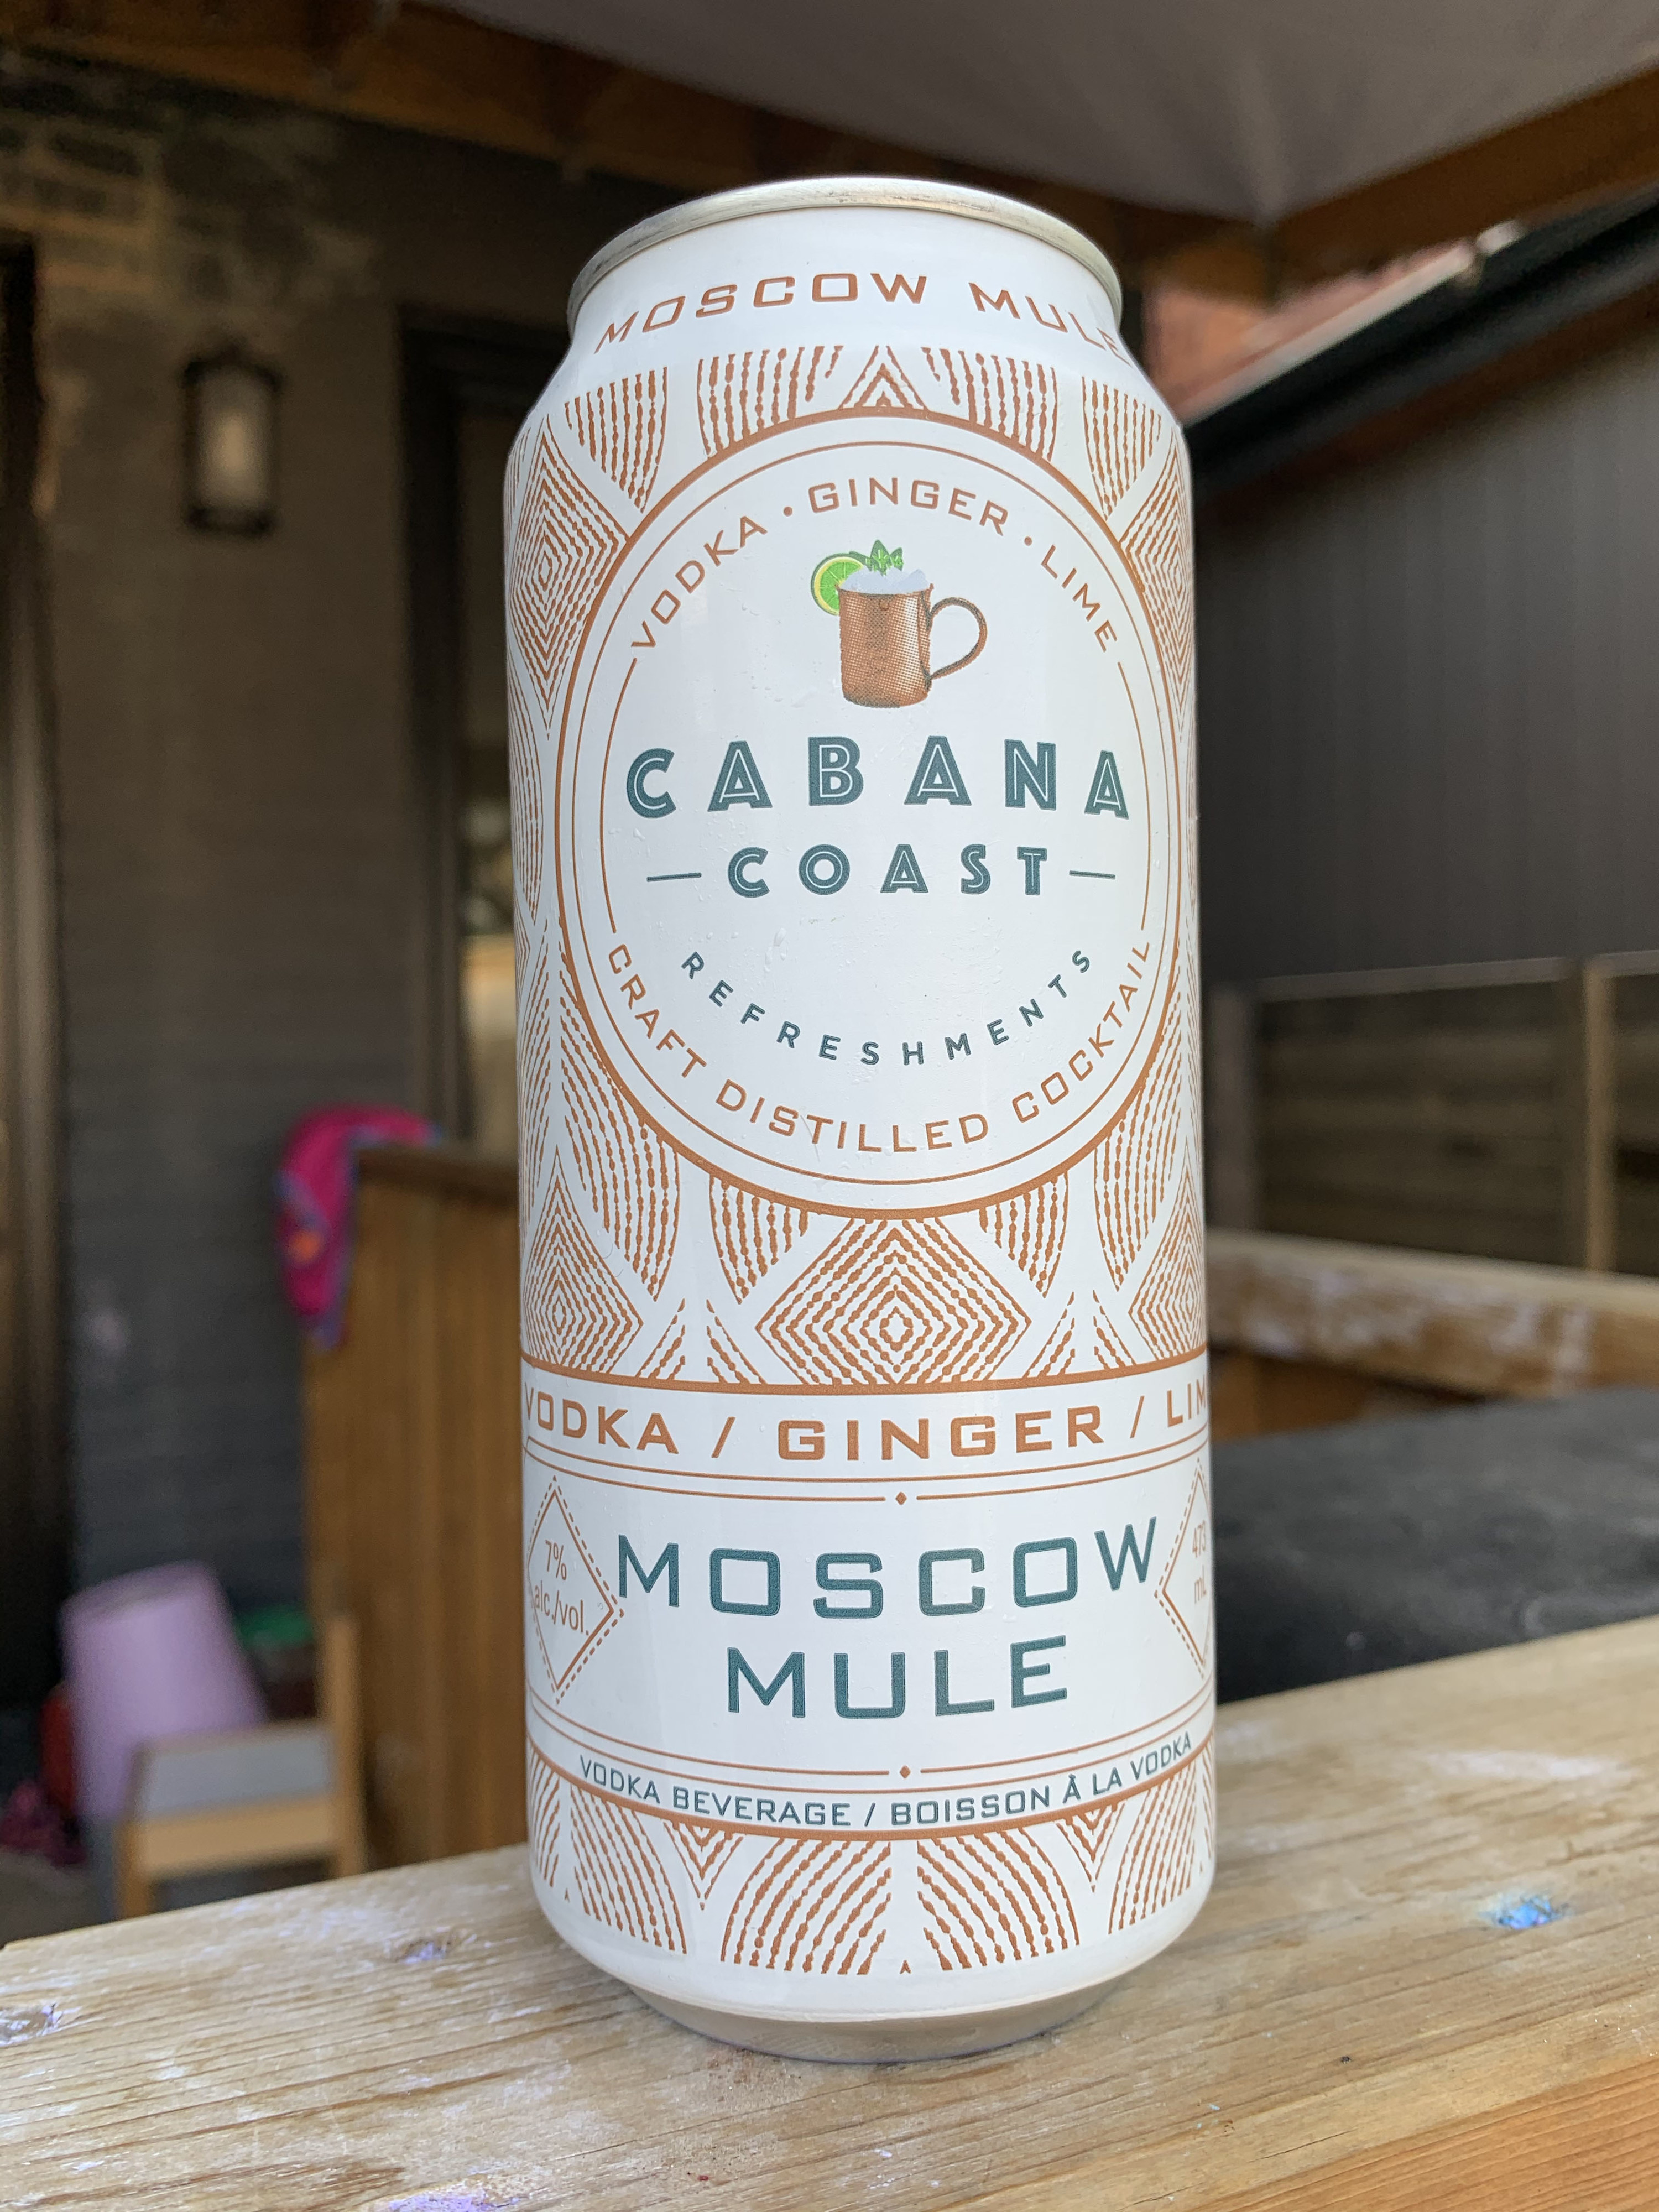 A can of Cabana Coast Moscow Mule that is in a gold and white can with an intricate gold pattern taking up most of the can.